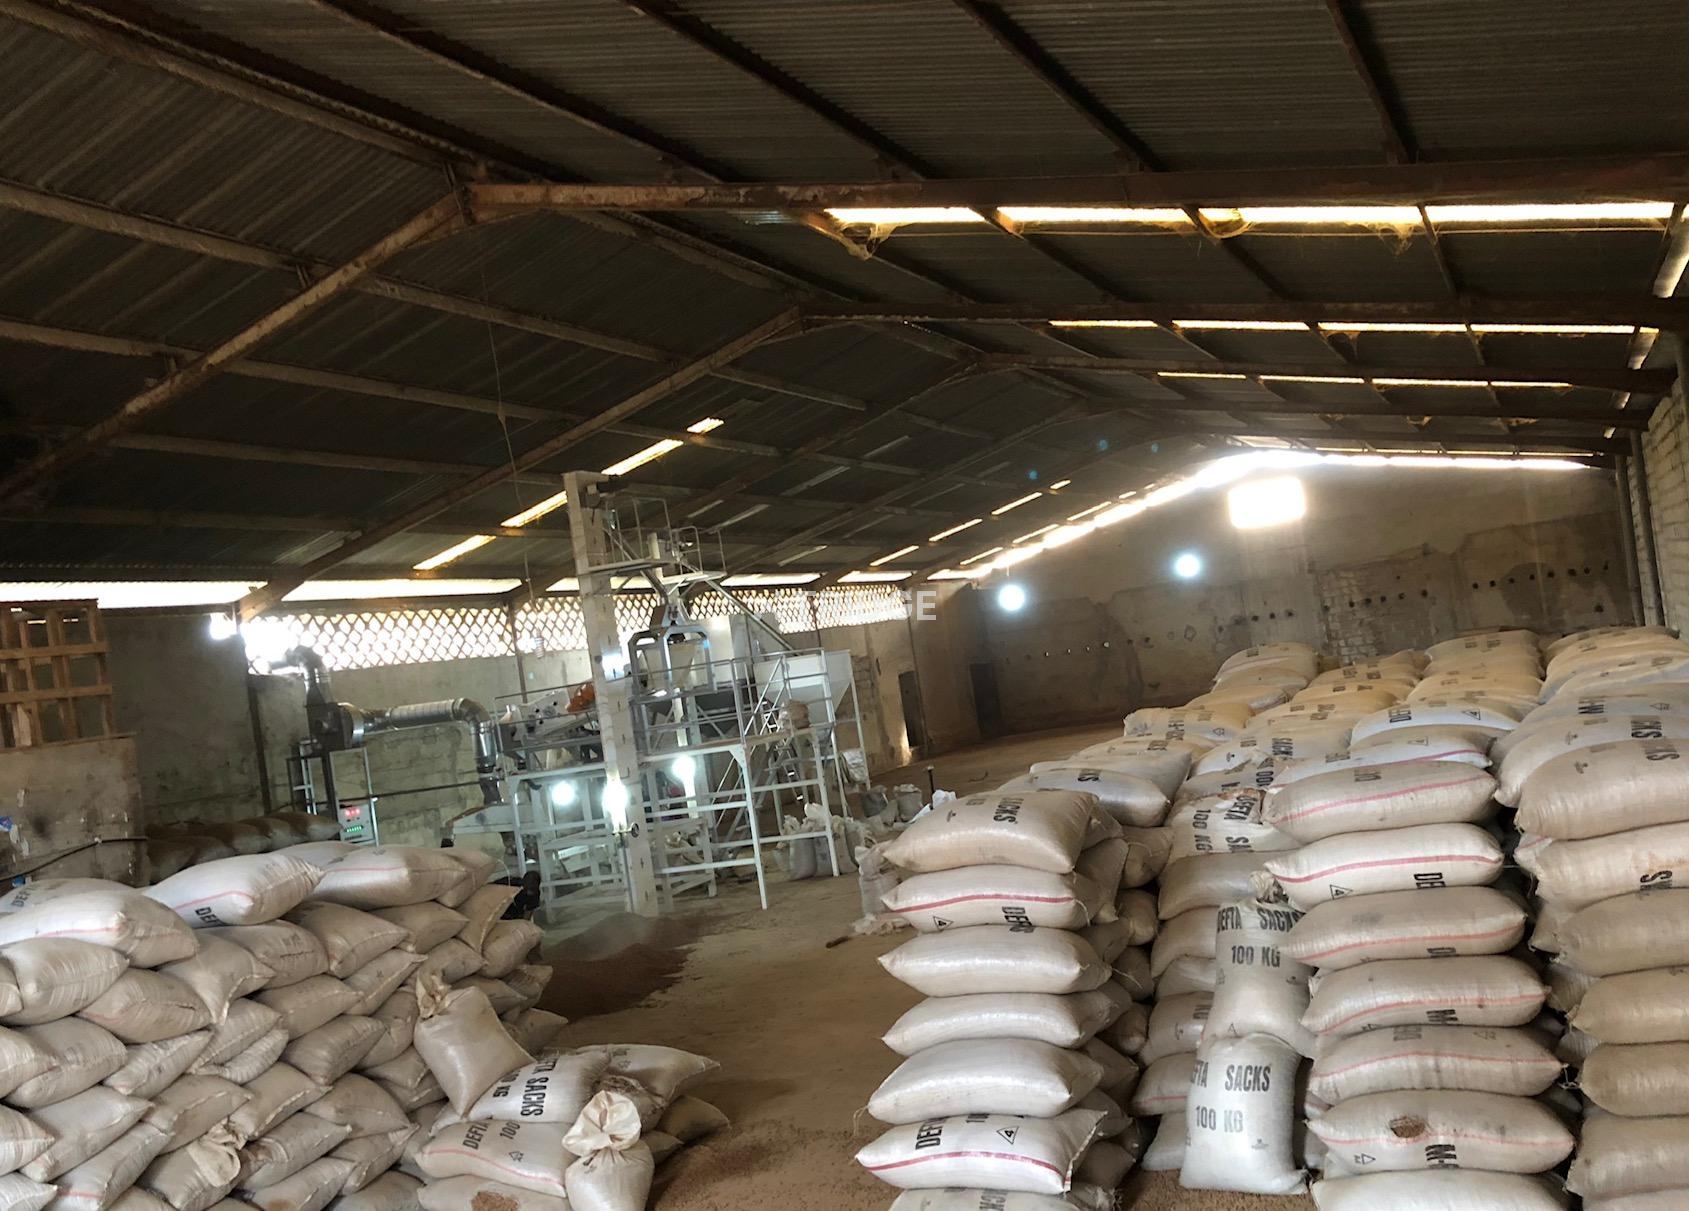 Seed Cleaning Factory, Lagos Axis, Nigeria.